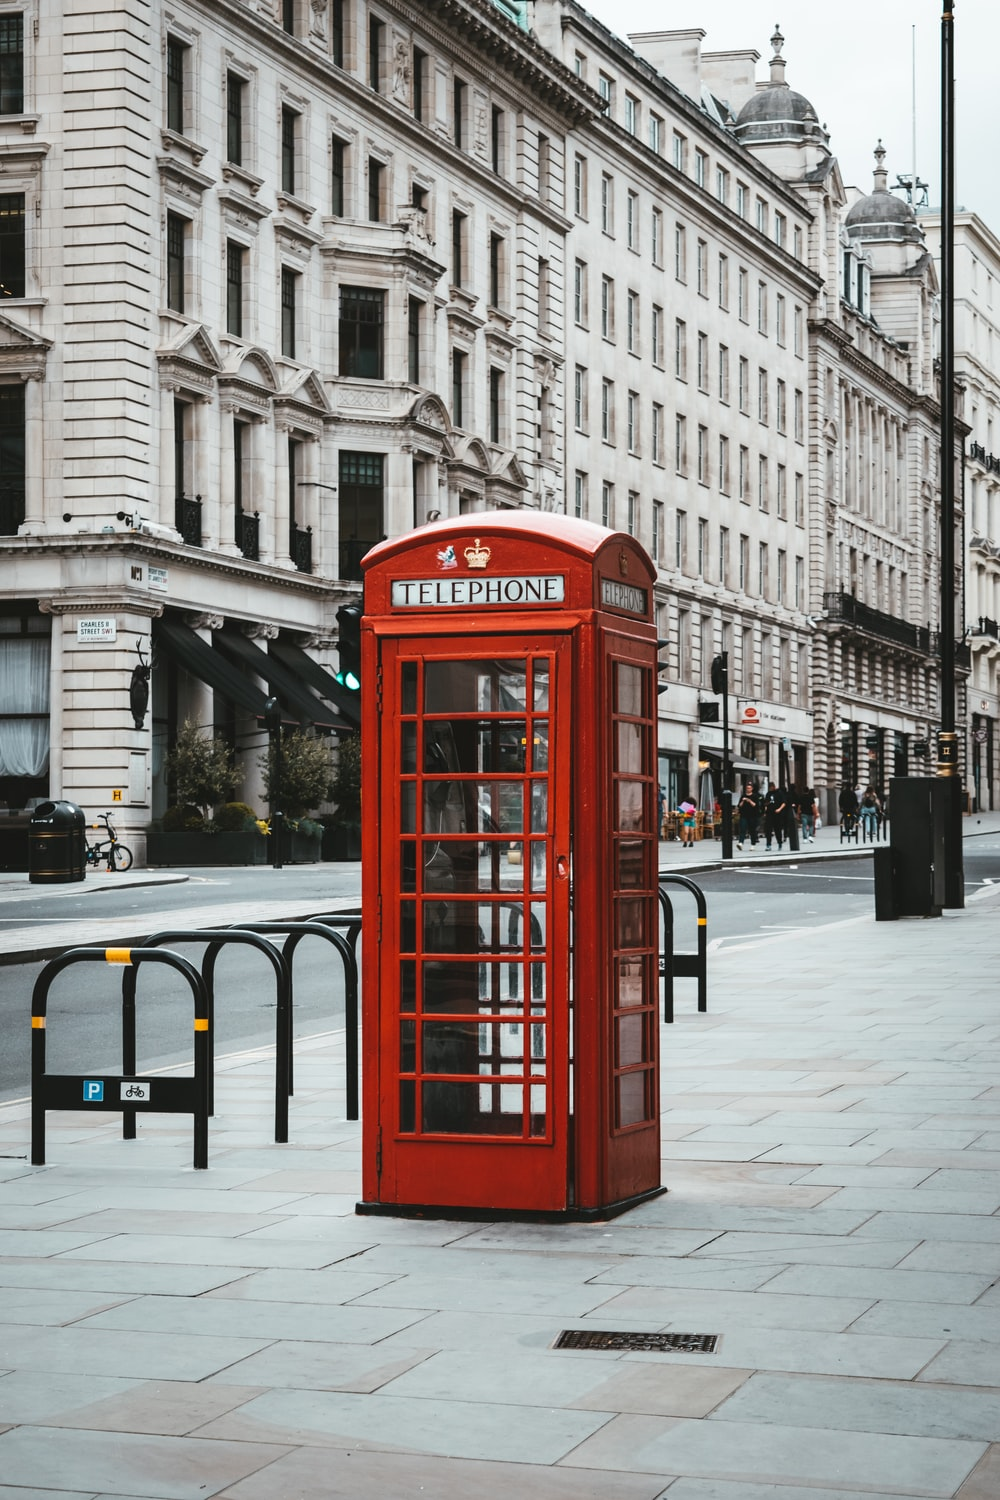 red telephone booth near white concrete building during daytime